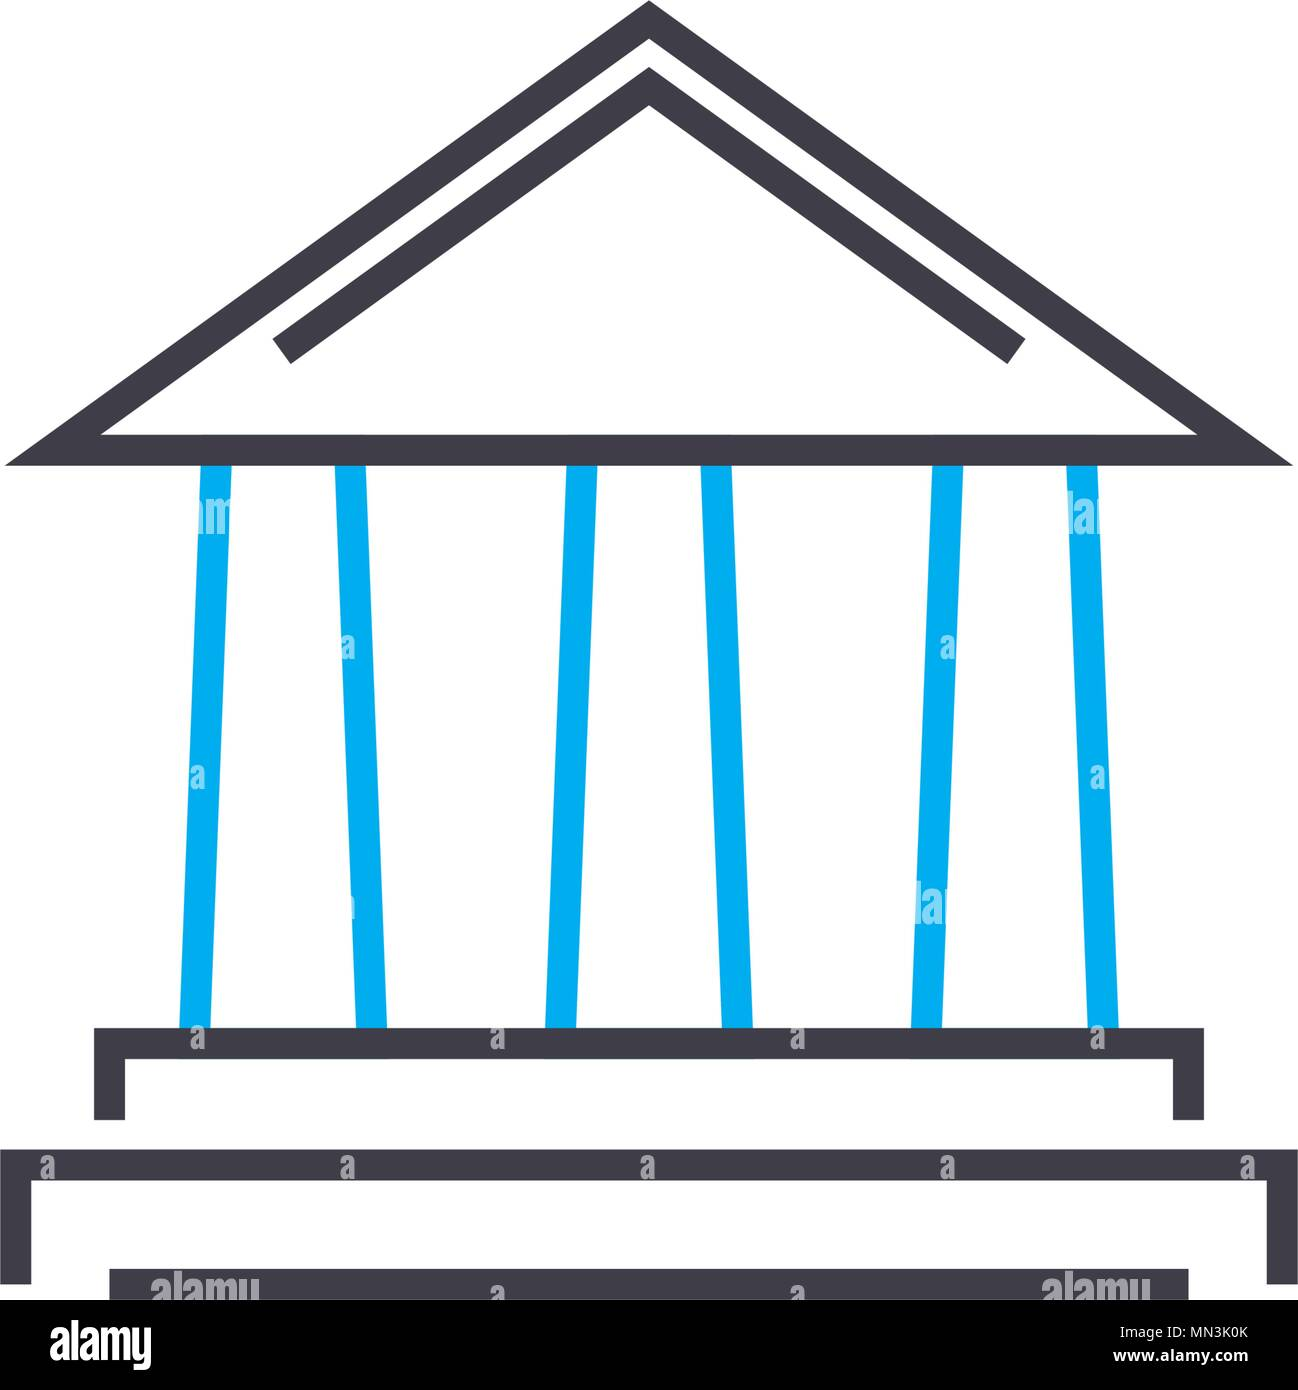 Financial institution vector thin line stroke icon. Financial institution outline illustration, linear sign, symbol concept. - Stock Vector